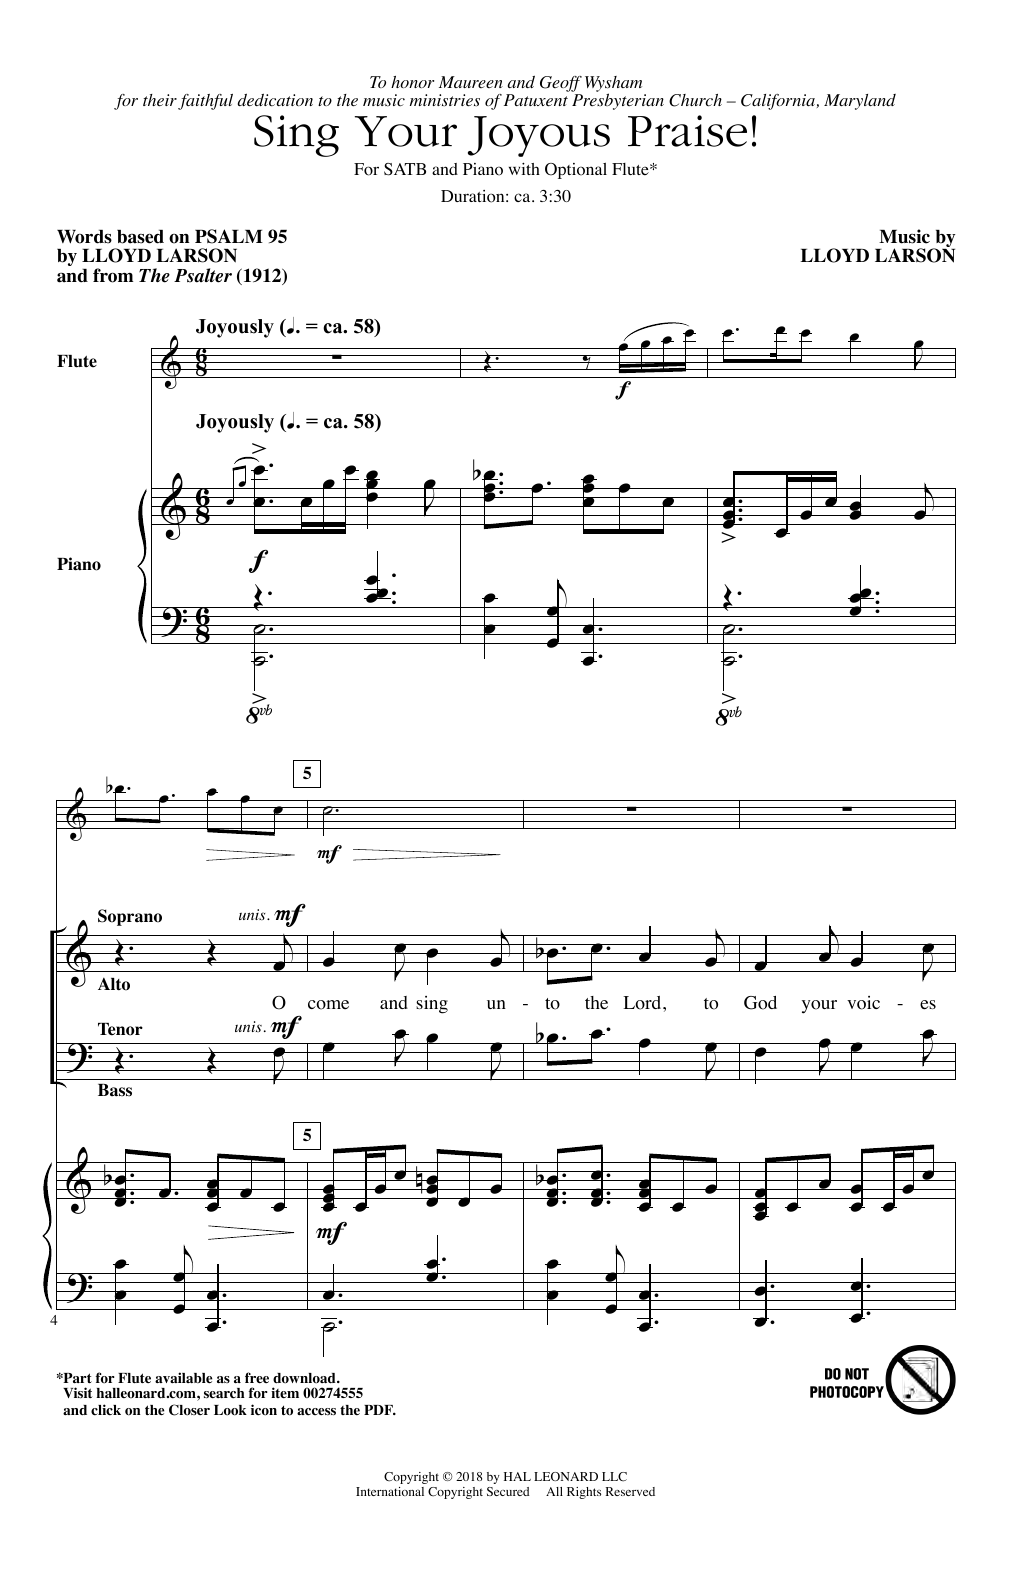 Sing Your Joyous Praise! (SATB Choir)